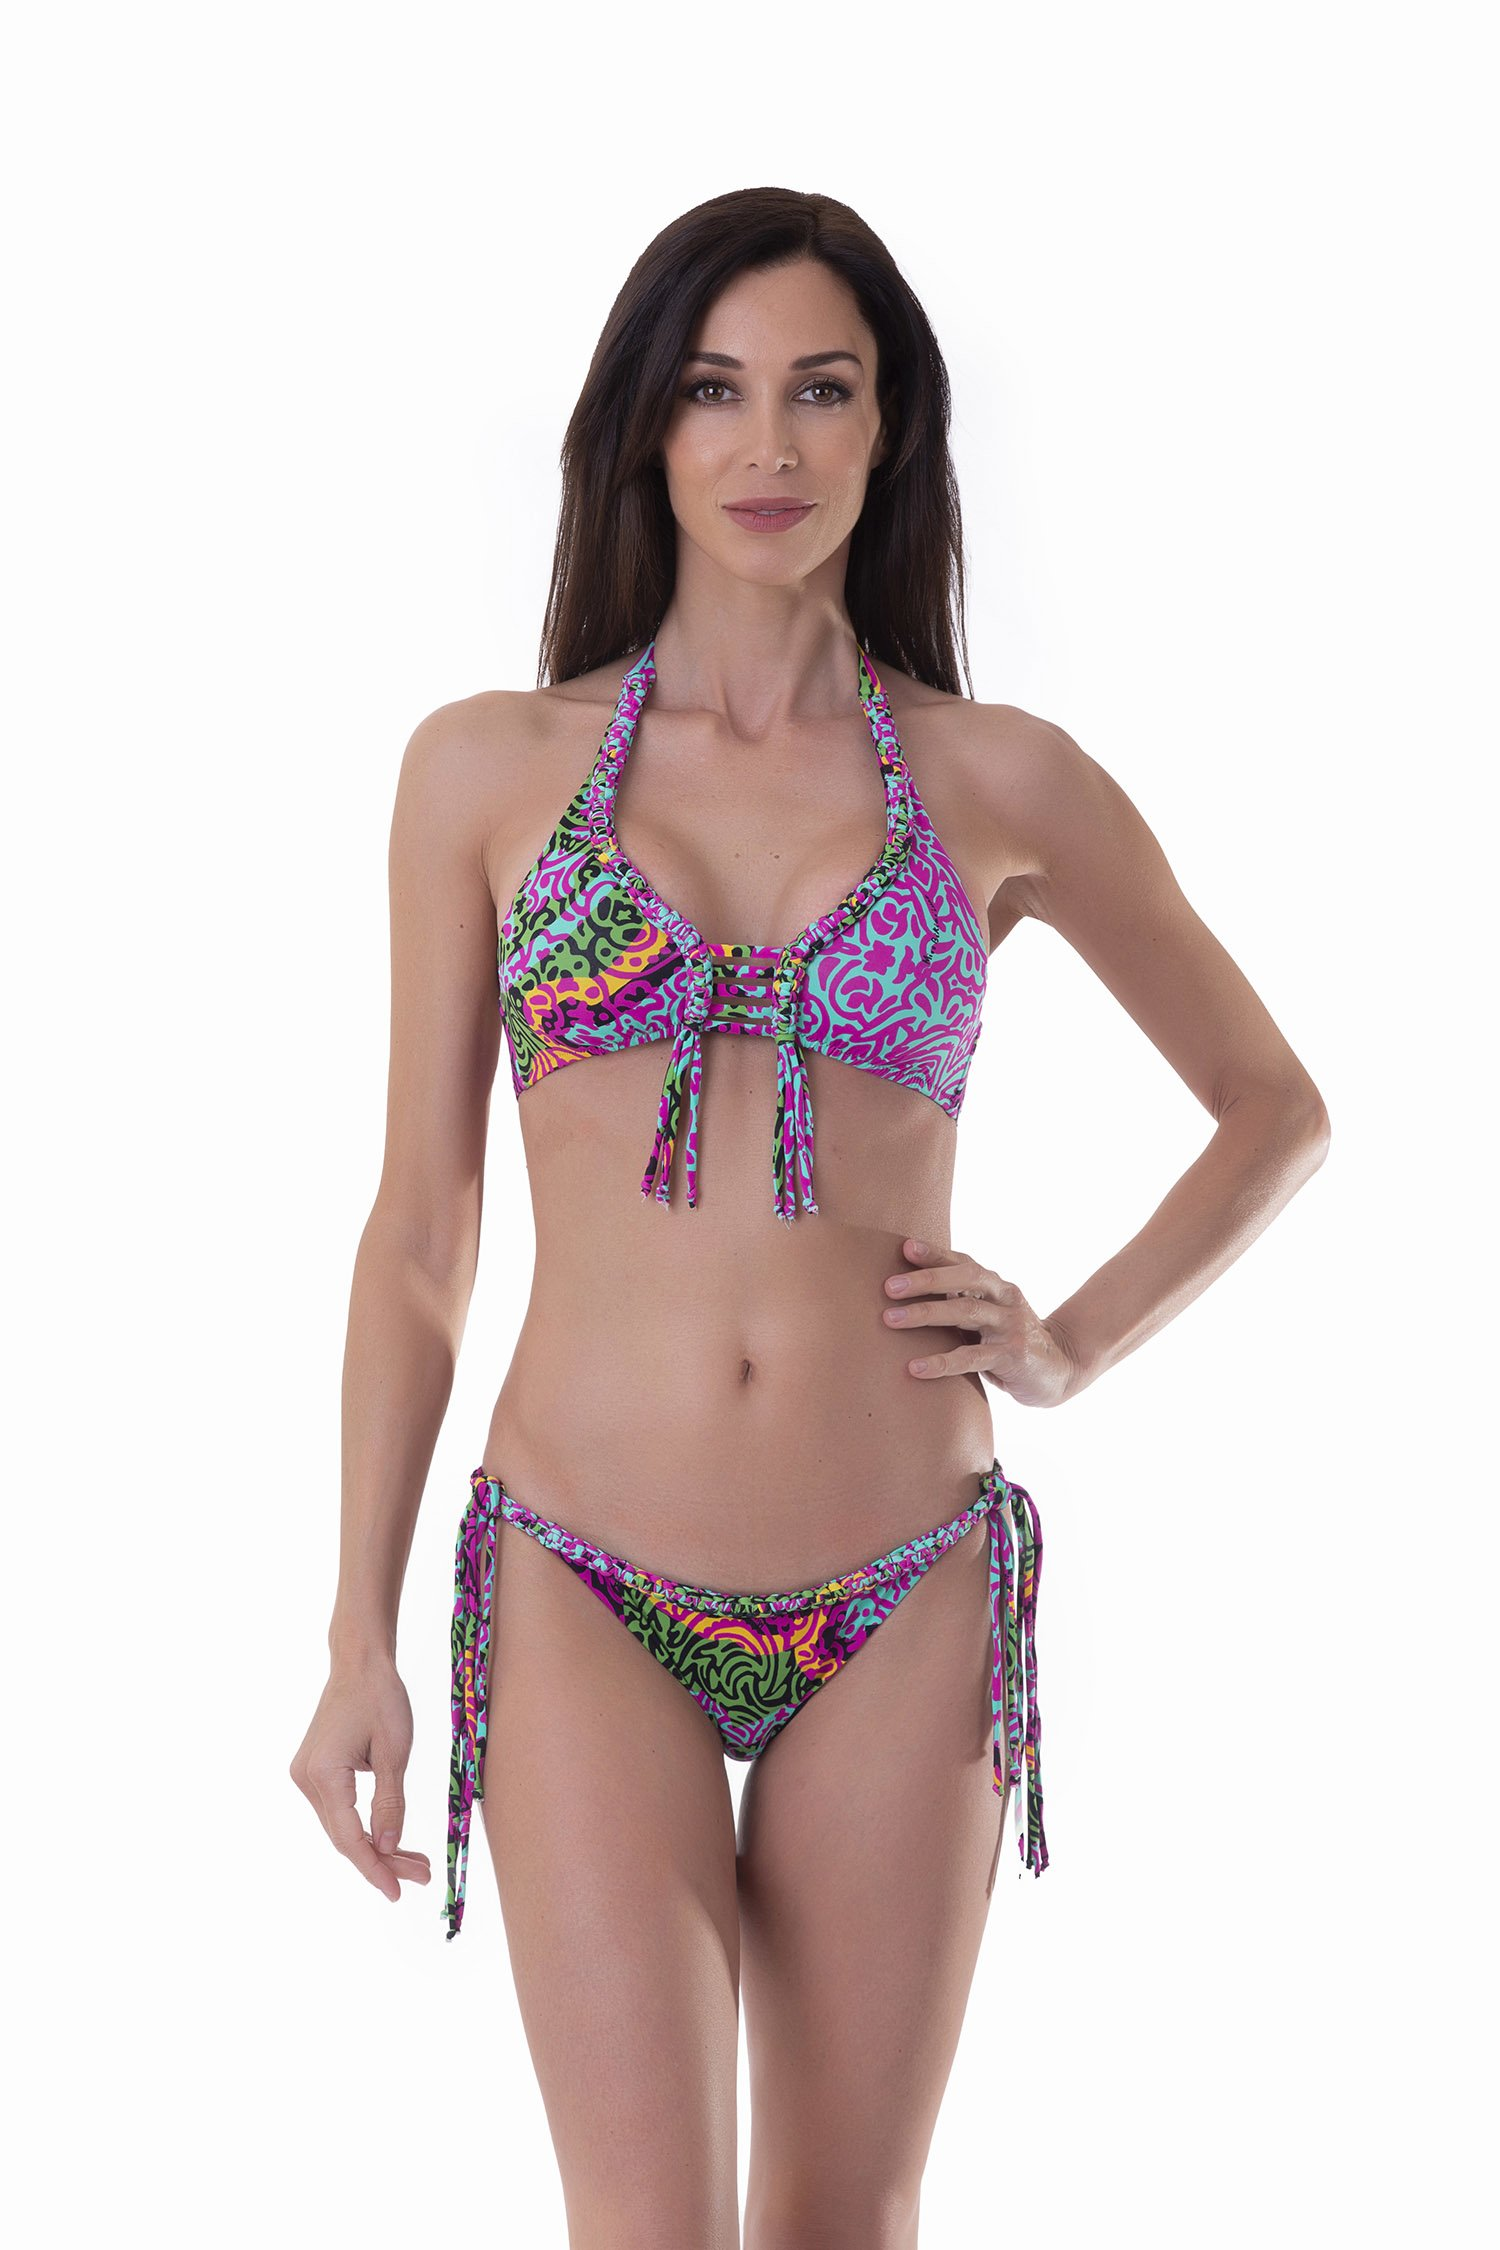 BIKINI LUXE A TRIANGOLO A FANTASIA CON SCOLLO ALL'AMERICANA E APPLICAZIONI IN MACRAME' - India Pop Fuxia